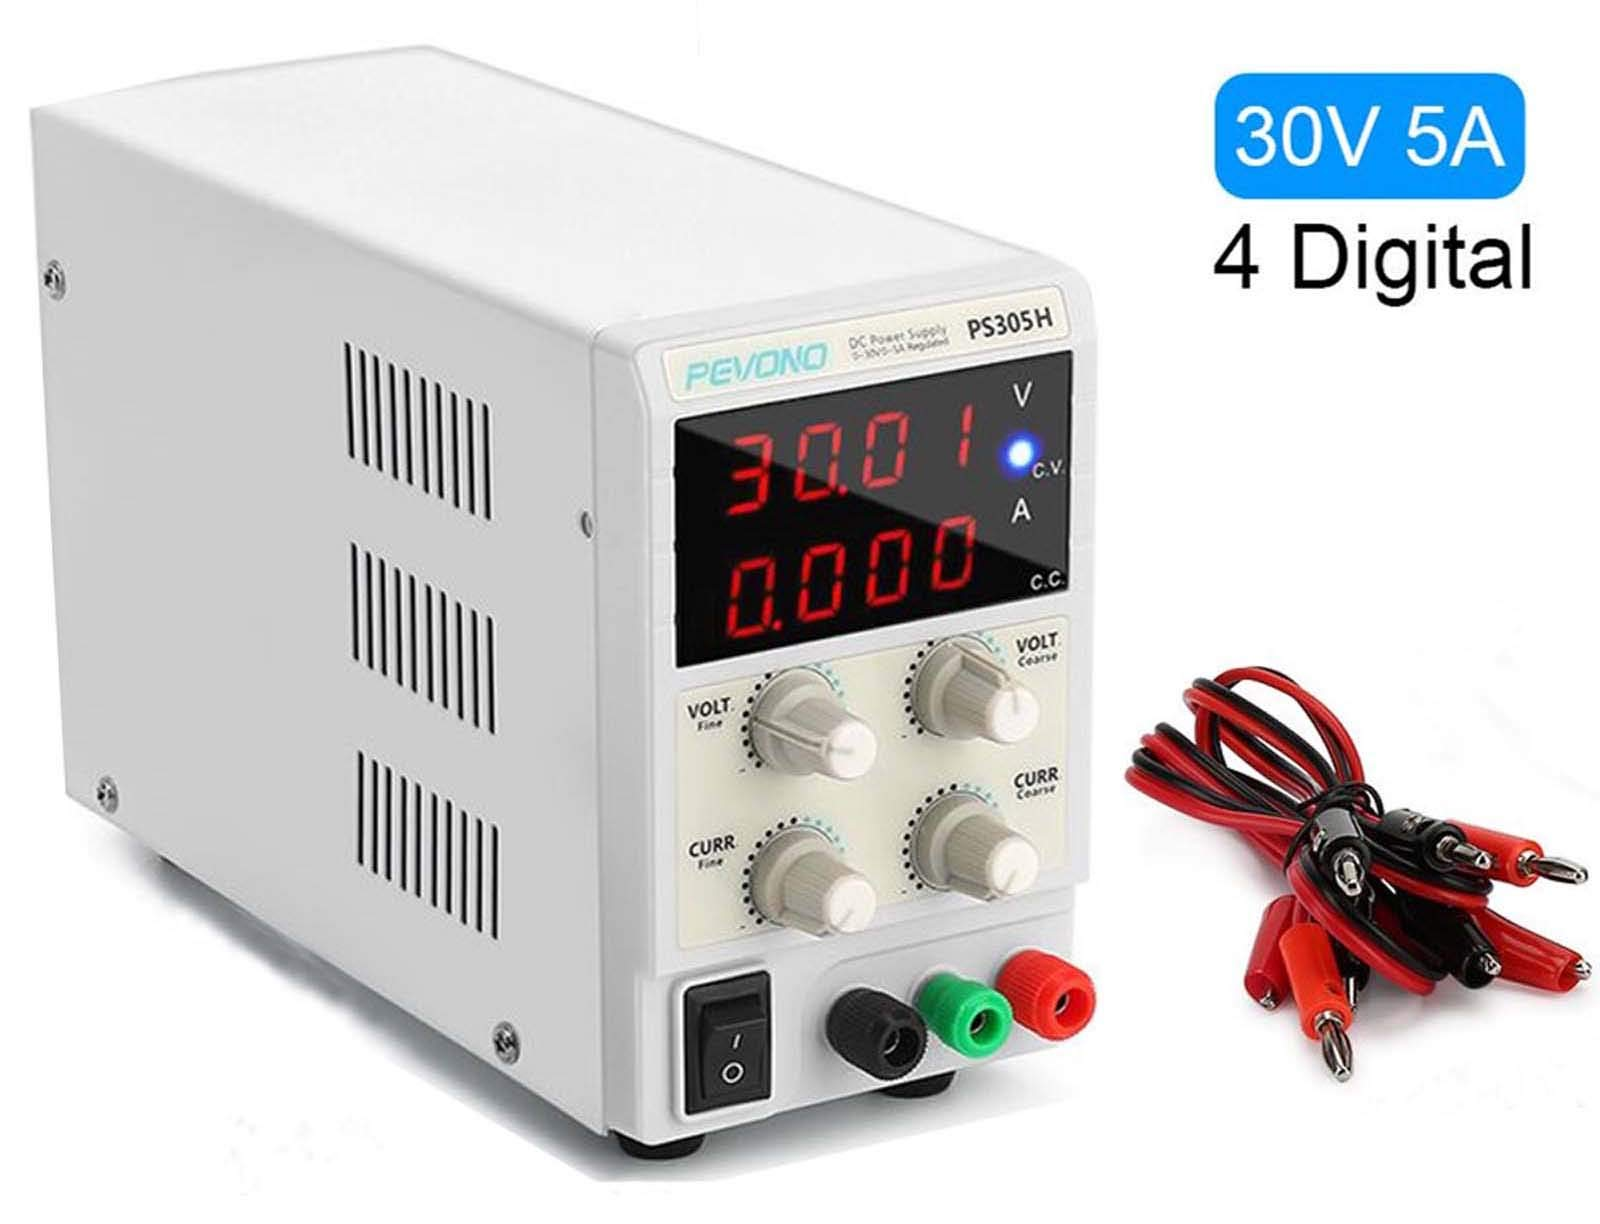 Best DC Bench Power Supply, Pevono PS305H 30V/5A 4 Digital LED Desktop Switching Variable Power Supply Voltage&Current Regulated Supply Power Source For Lab Repair,Electronic Tester, Power Calculator by Pevono (Image #1)